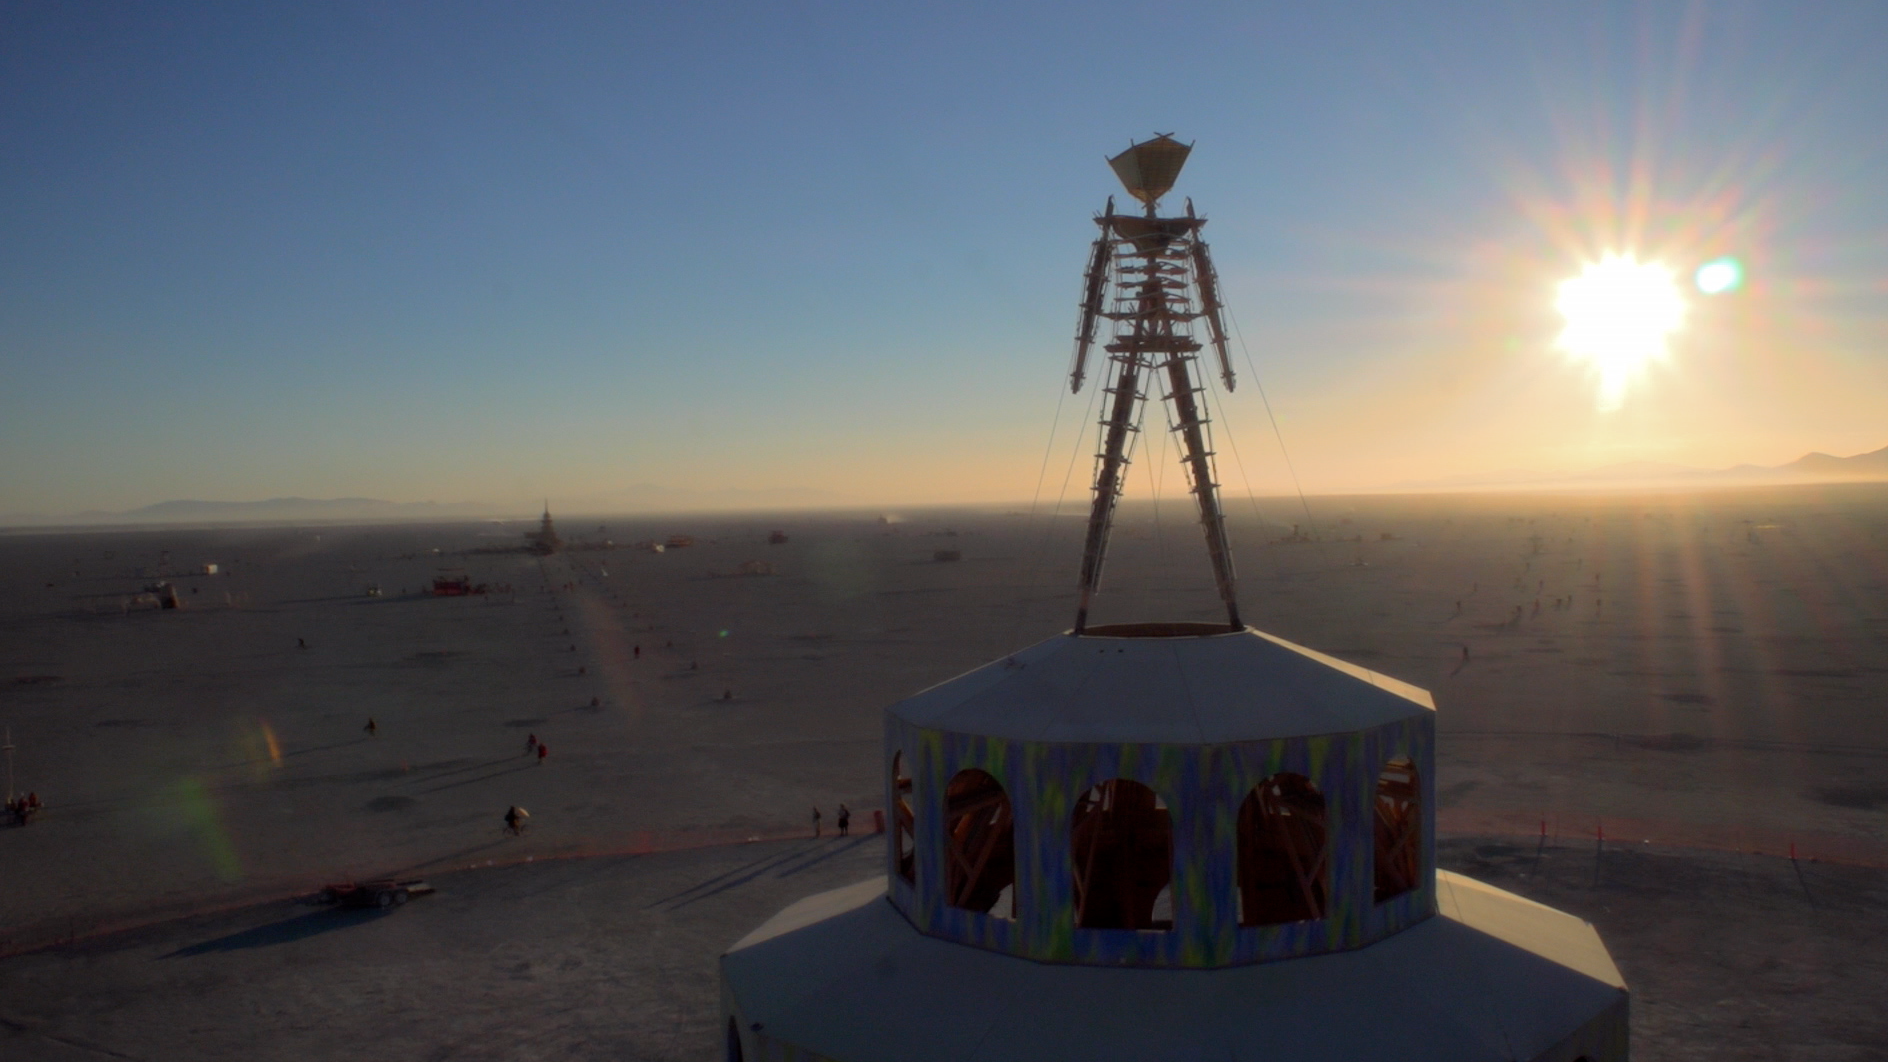 Spark A Burning Man Story (1) - highonfilms